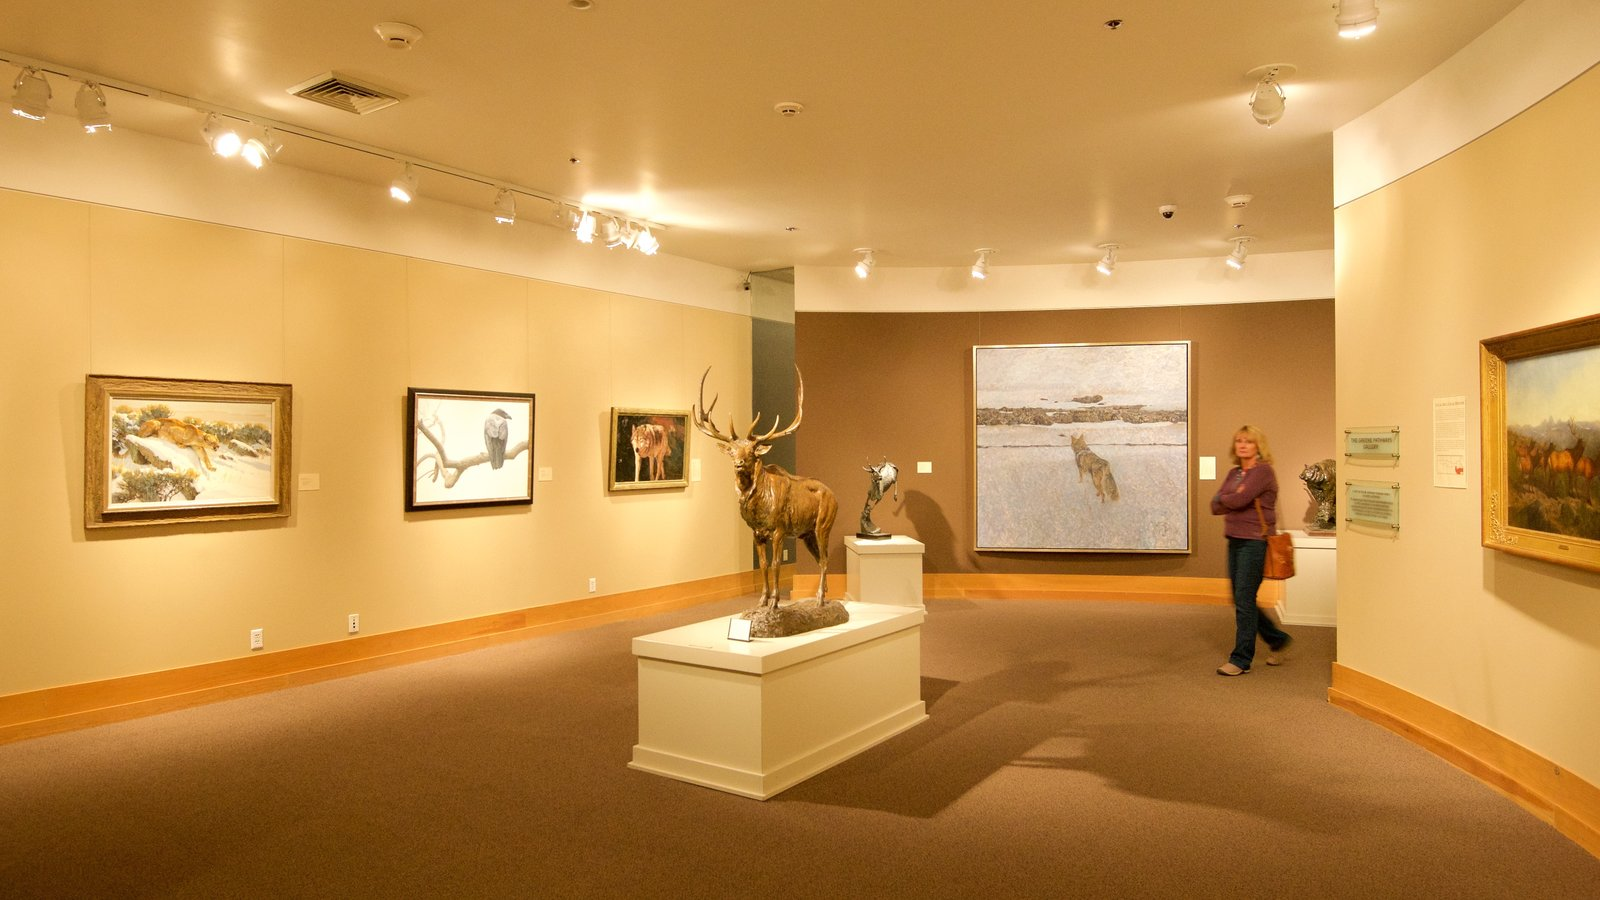 National Wildlife Art Museum mostrando vistas internas e arte